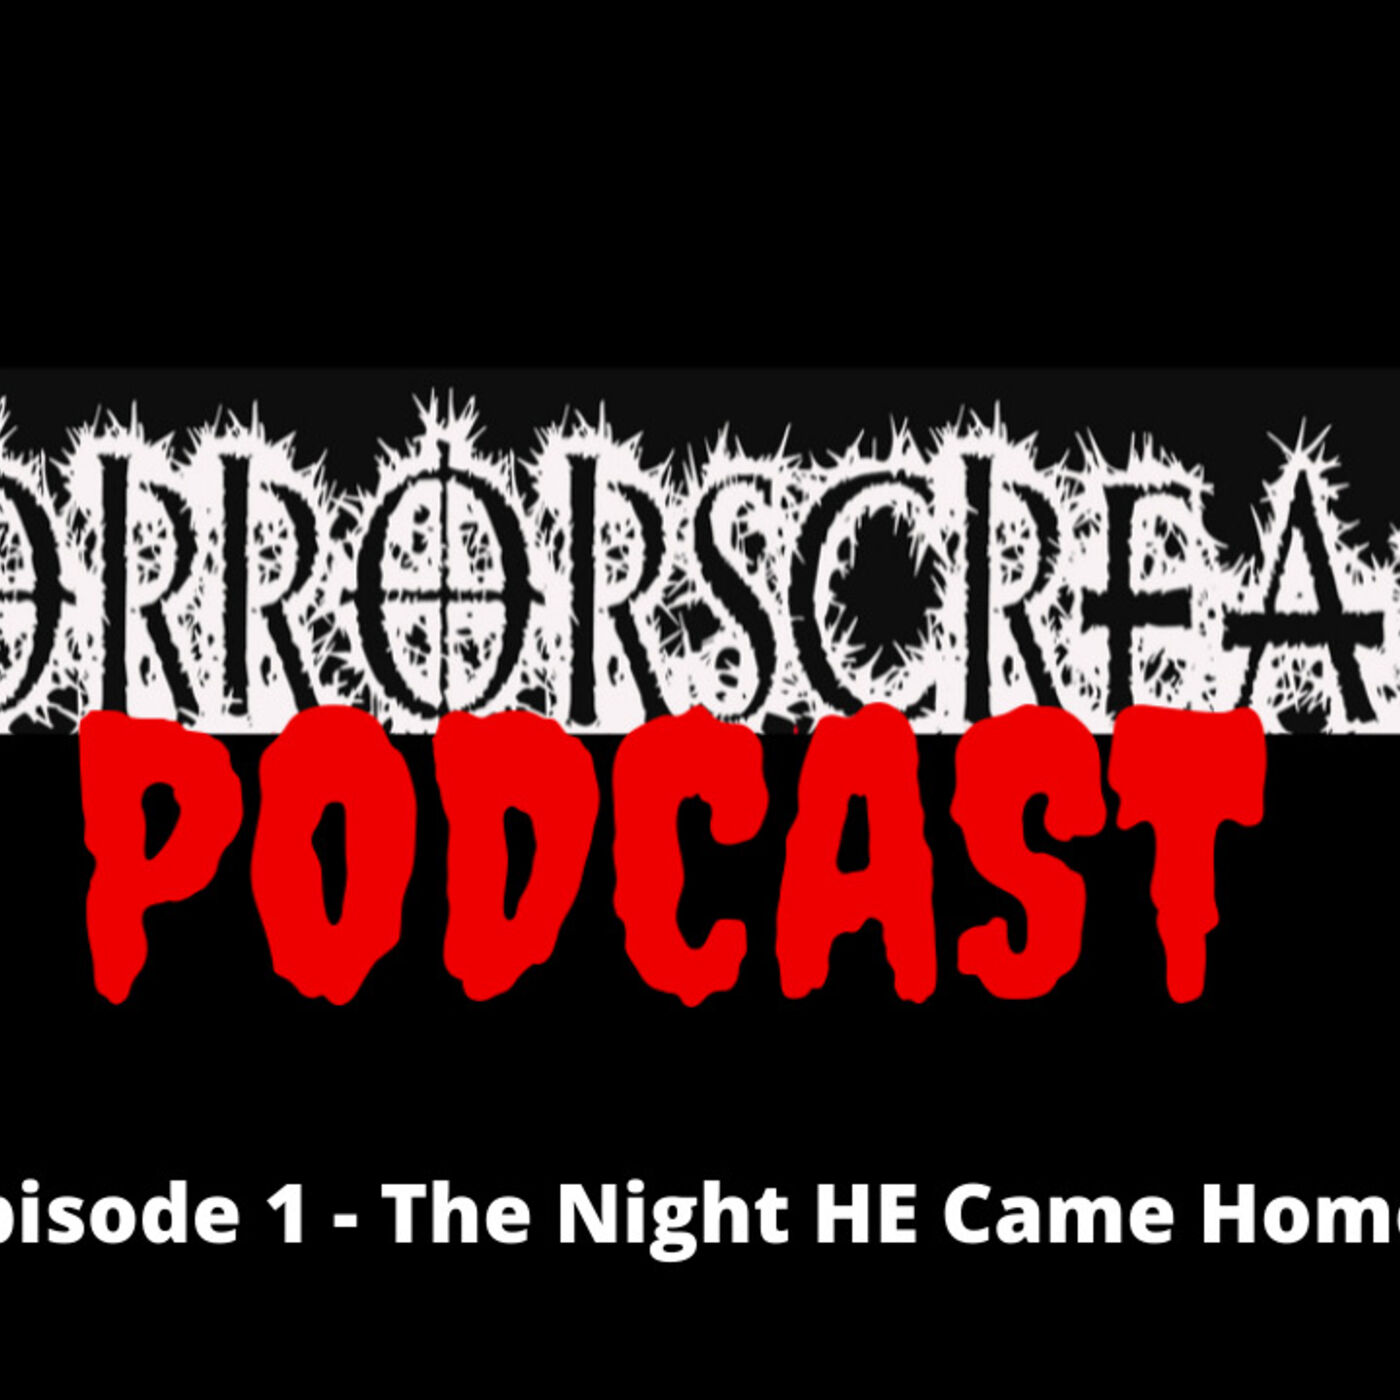 HORRORSCREAMS PODCAST: Episode 1 - The Night HE Came Home.